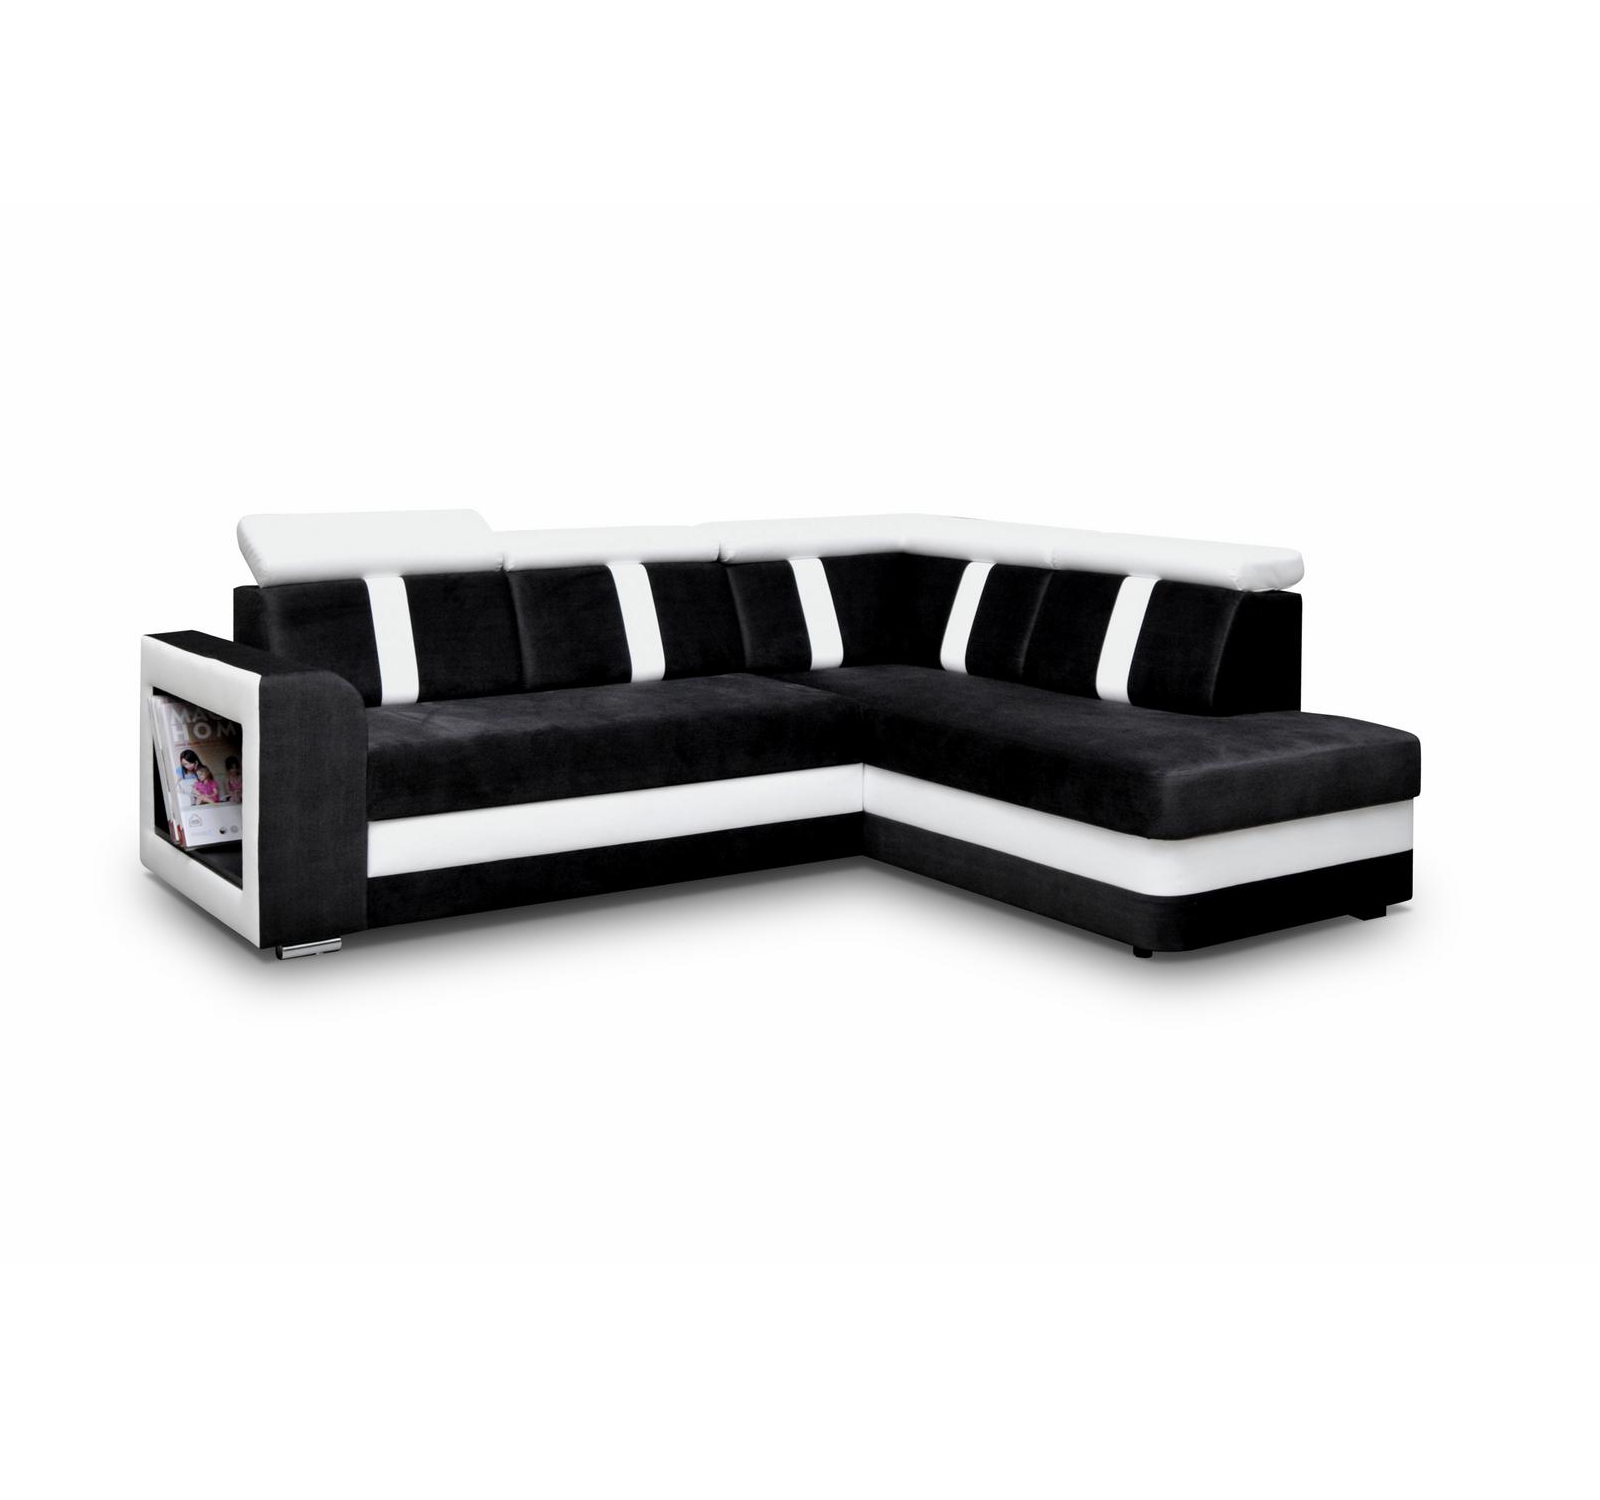 ecksofa texas schwarz m bel muller braun. Black Bedroom Furniture Sets. Home Design Ideas